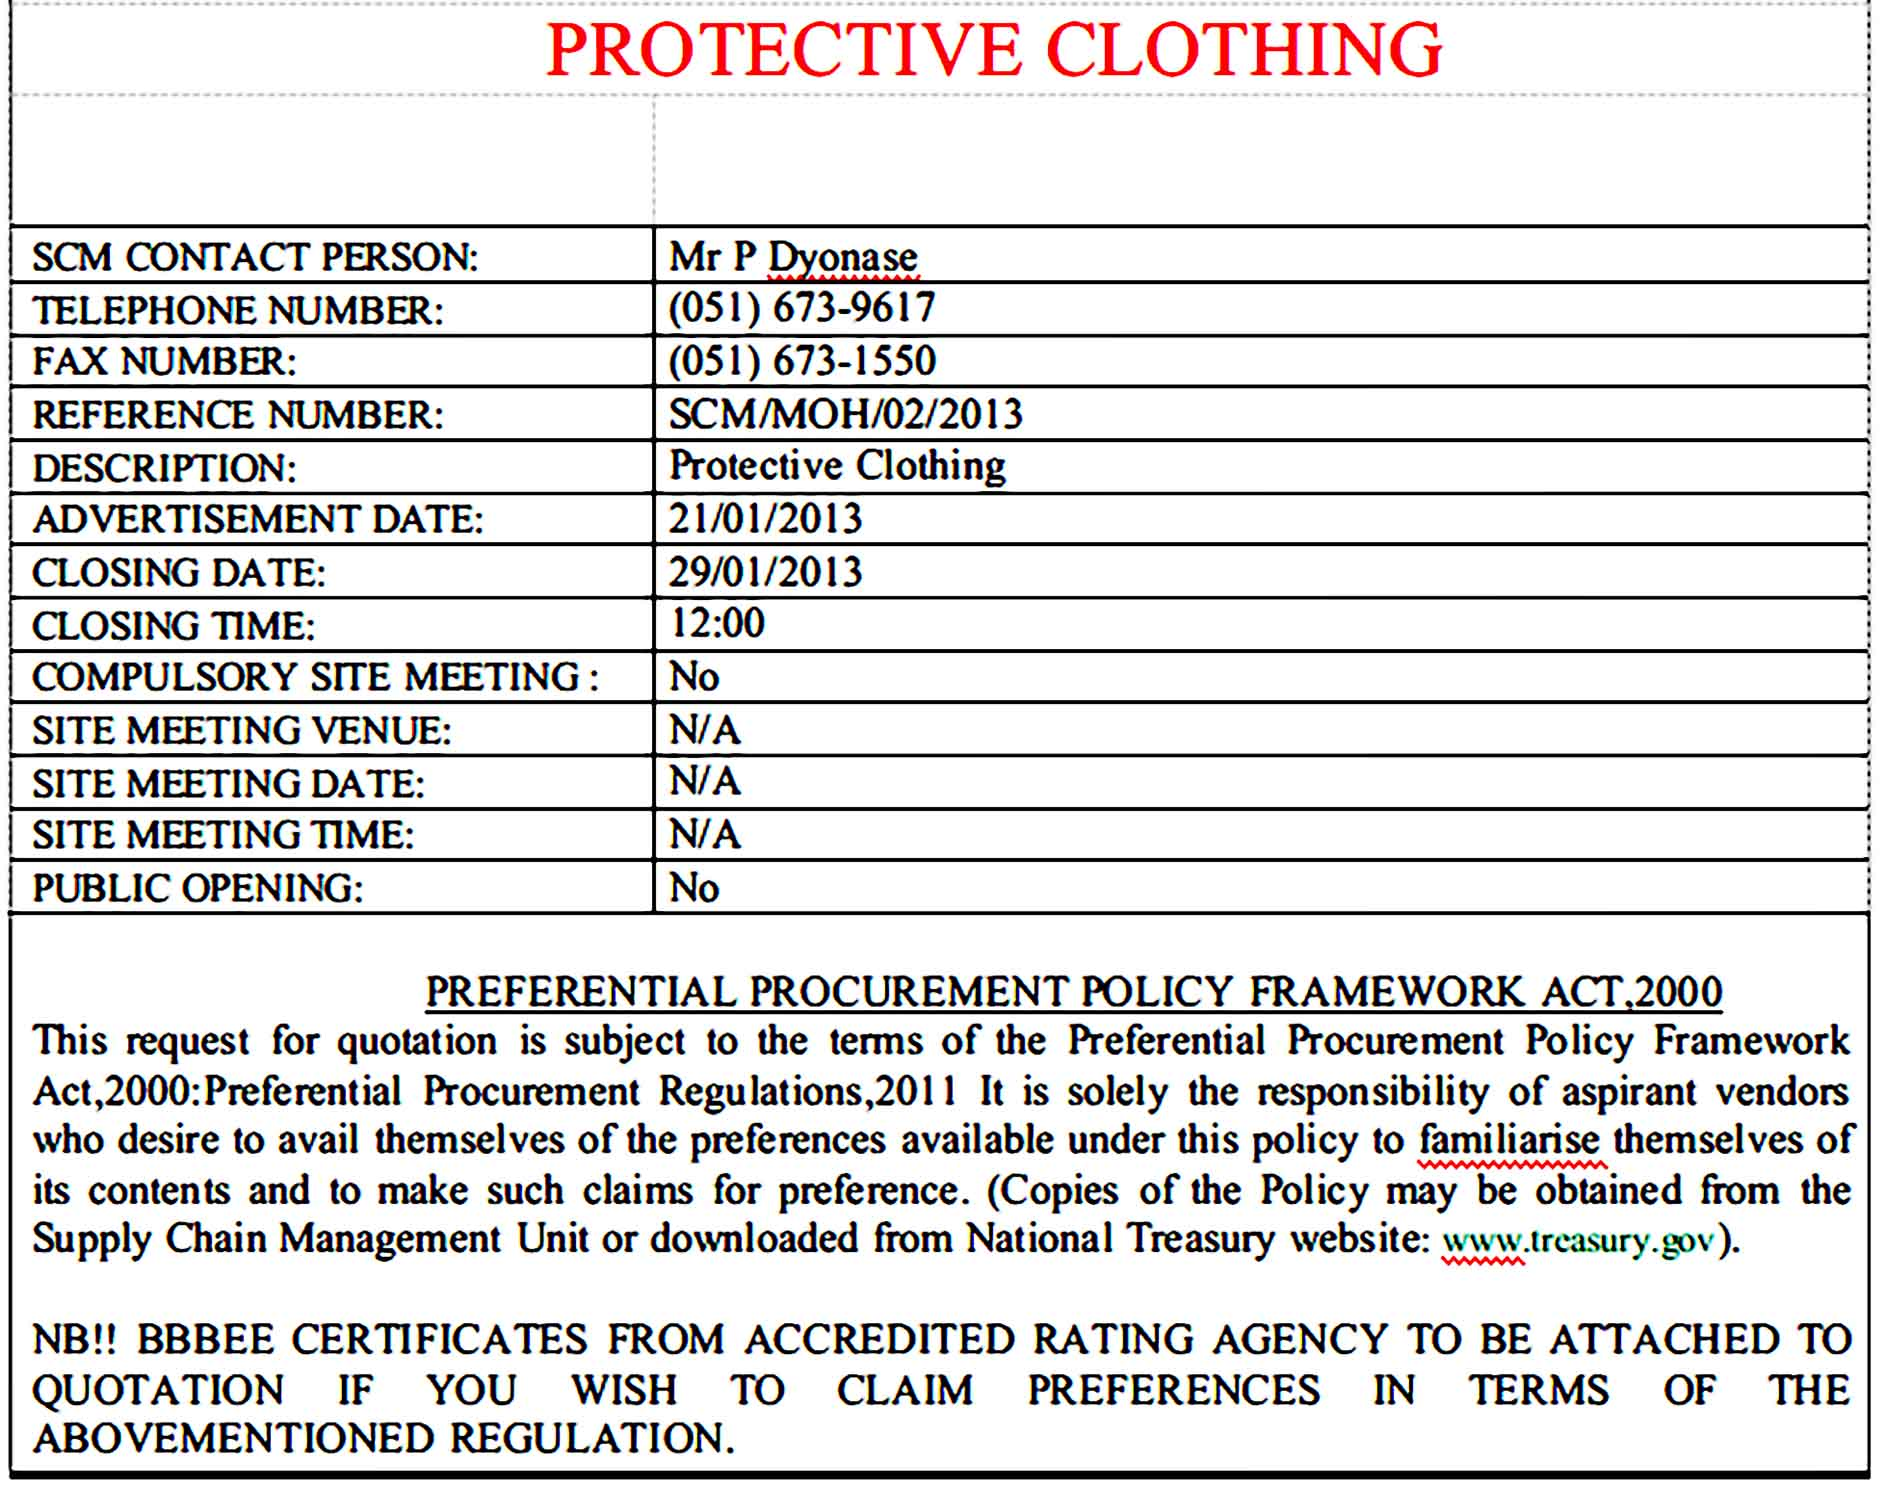 Professional Quotation for Clothing 1